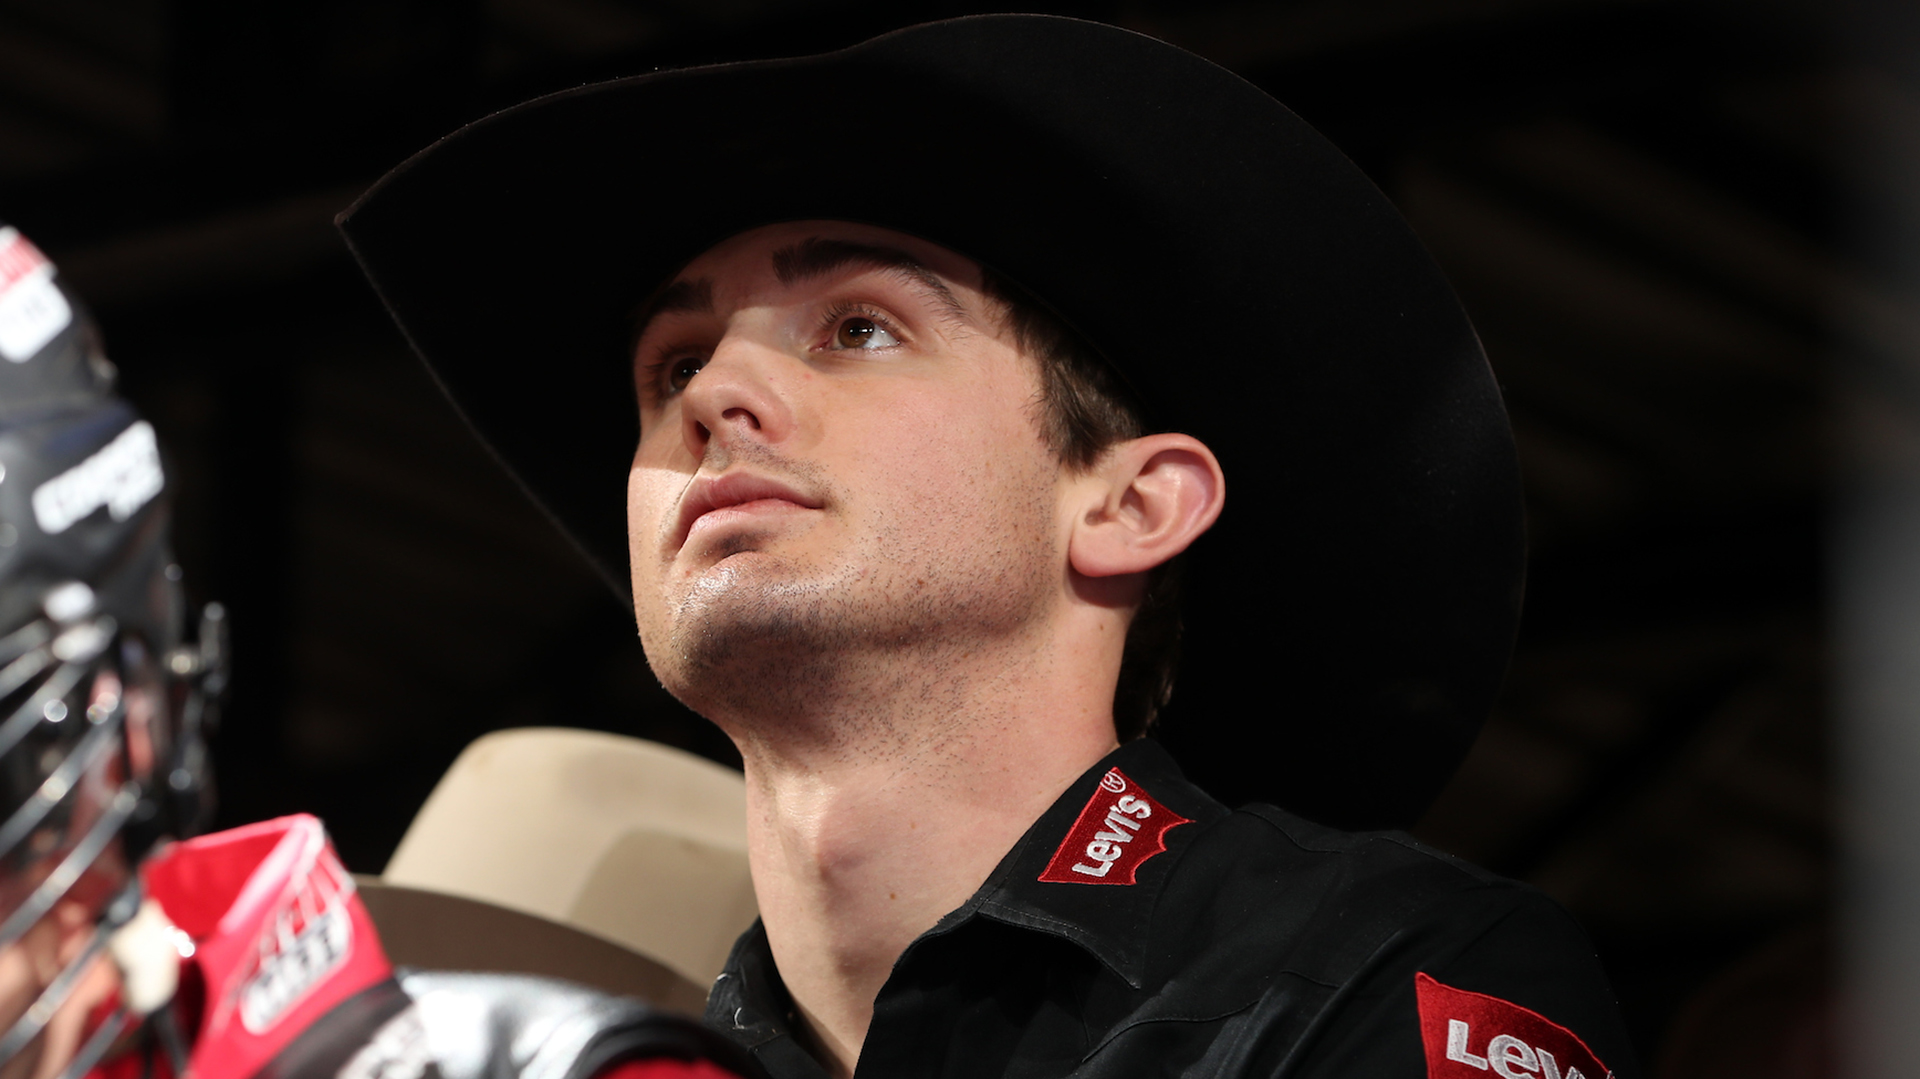 Albuquerque 15/15 Preview: Teel looks to continue hot streak against Smooth Operator